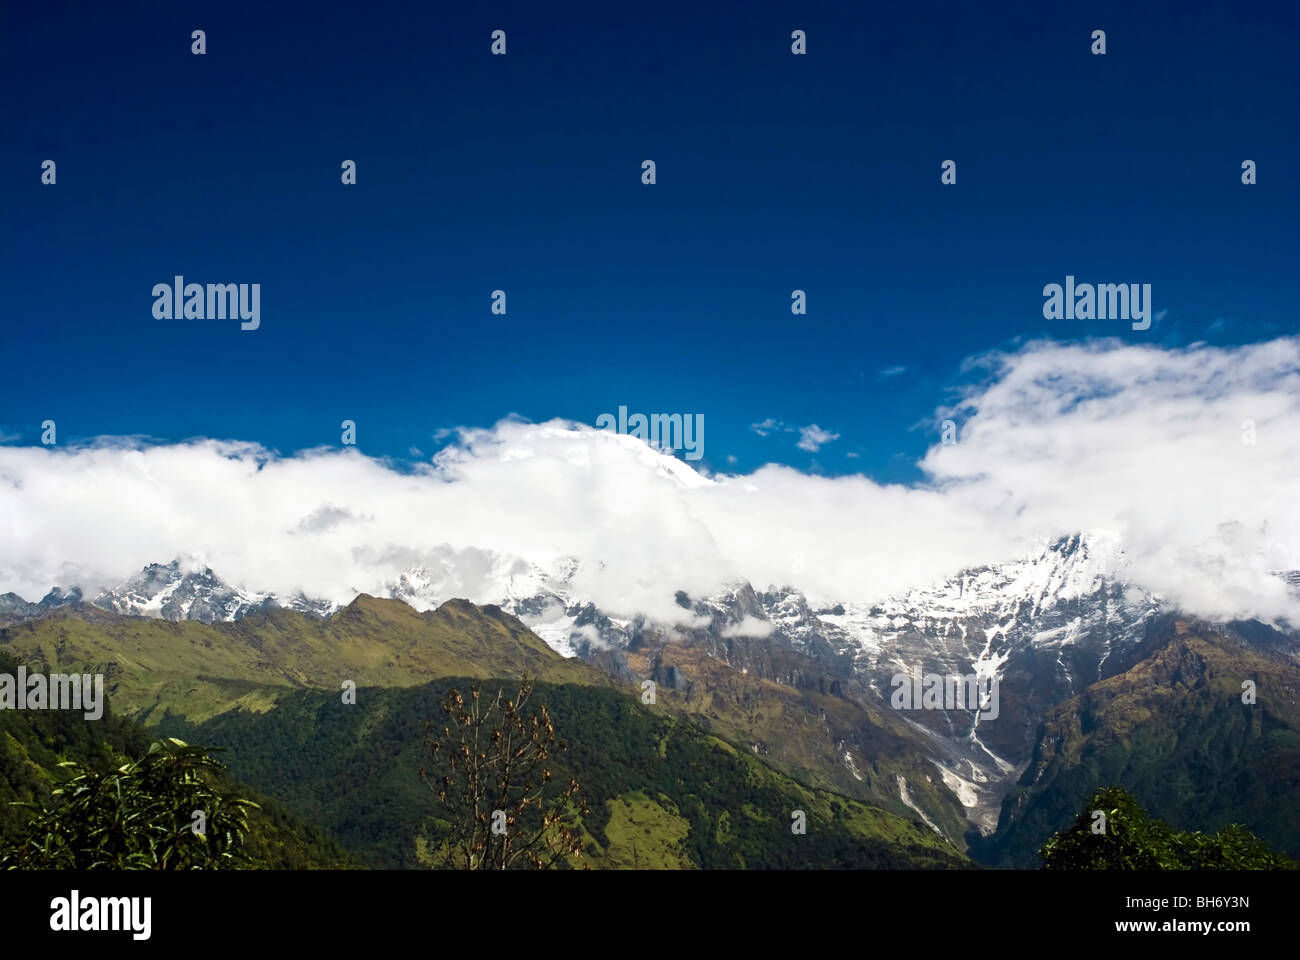 Snow Mountains Landscapes under blue sky and white clouds of Himalayas Nepal - Stock Image